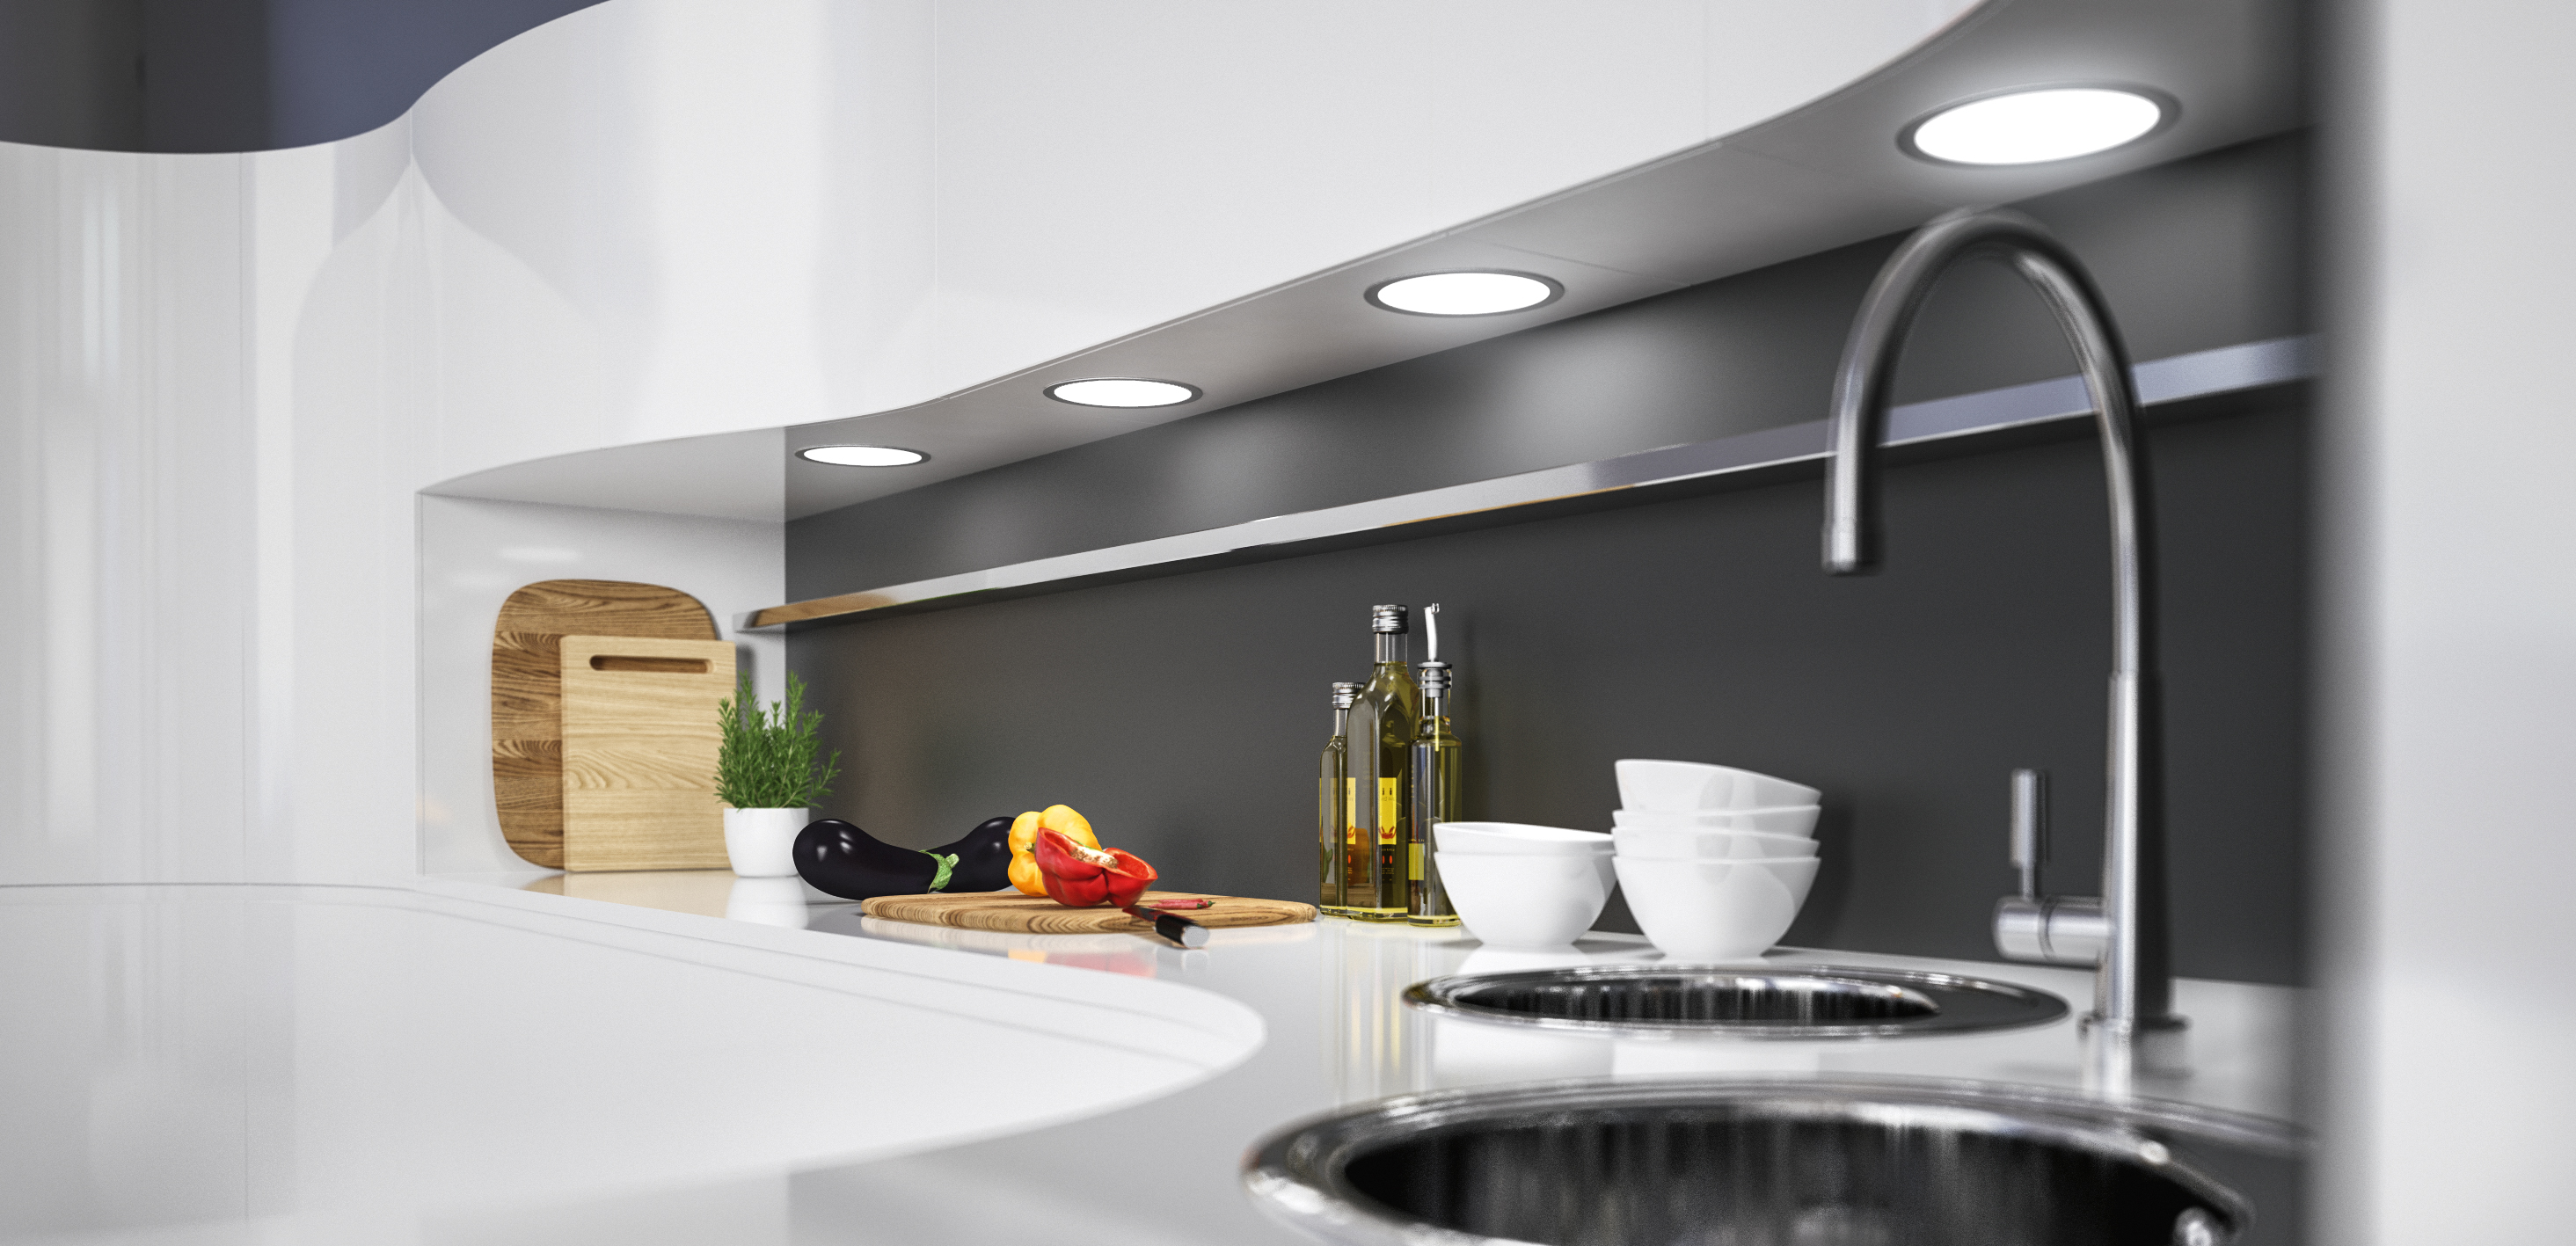 Simple elegance and homogeneous light output are the most important features of the Loox LED 3022 recess mounted light/surface mounted downlight. Its flat design makes creative application solutions possible.